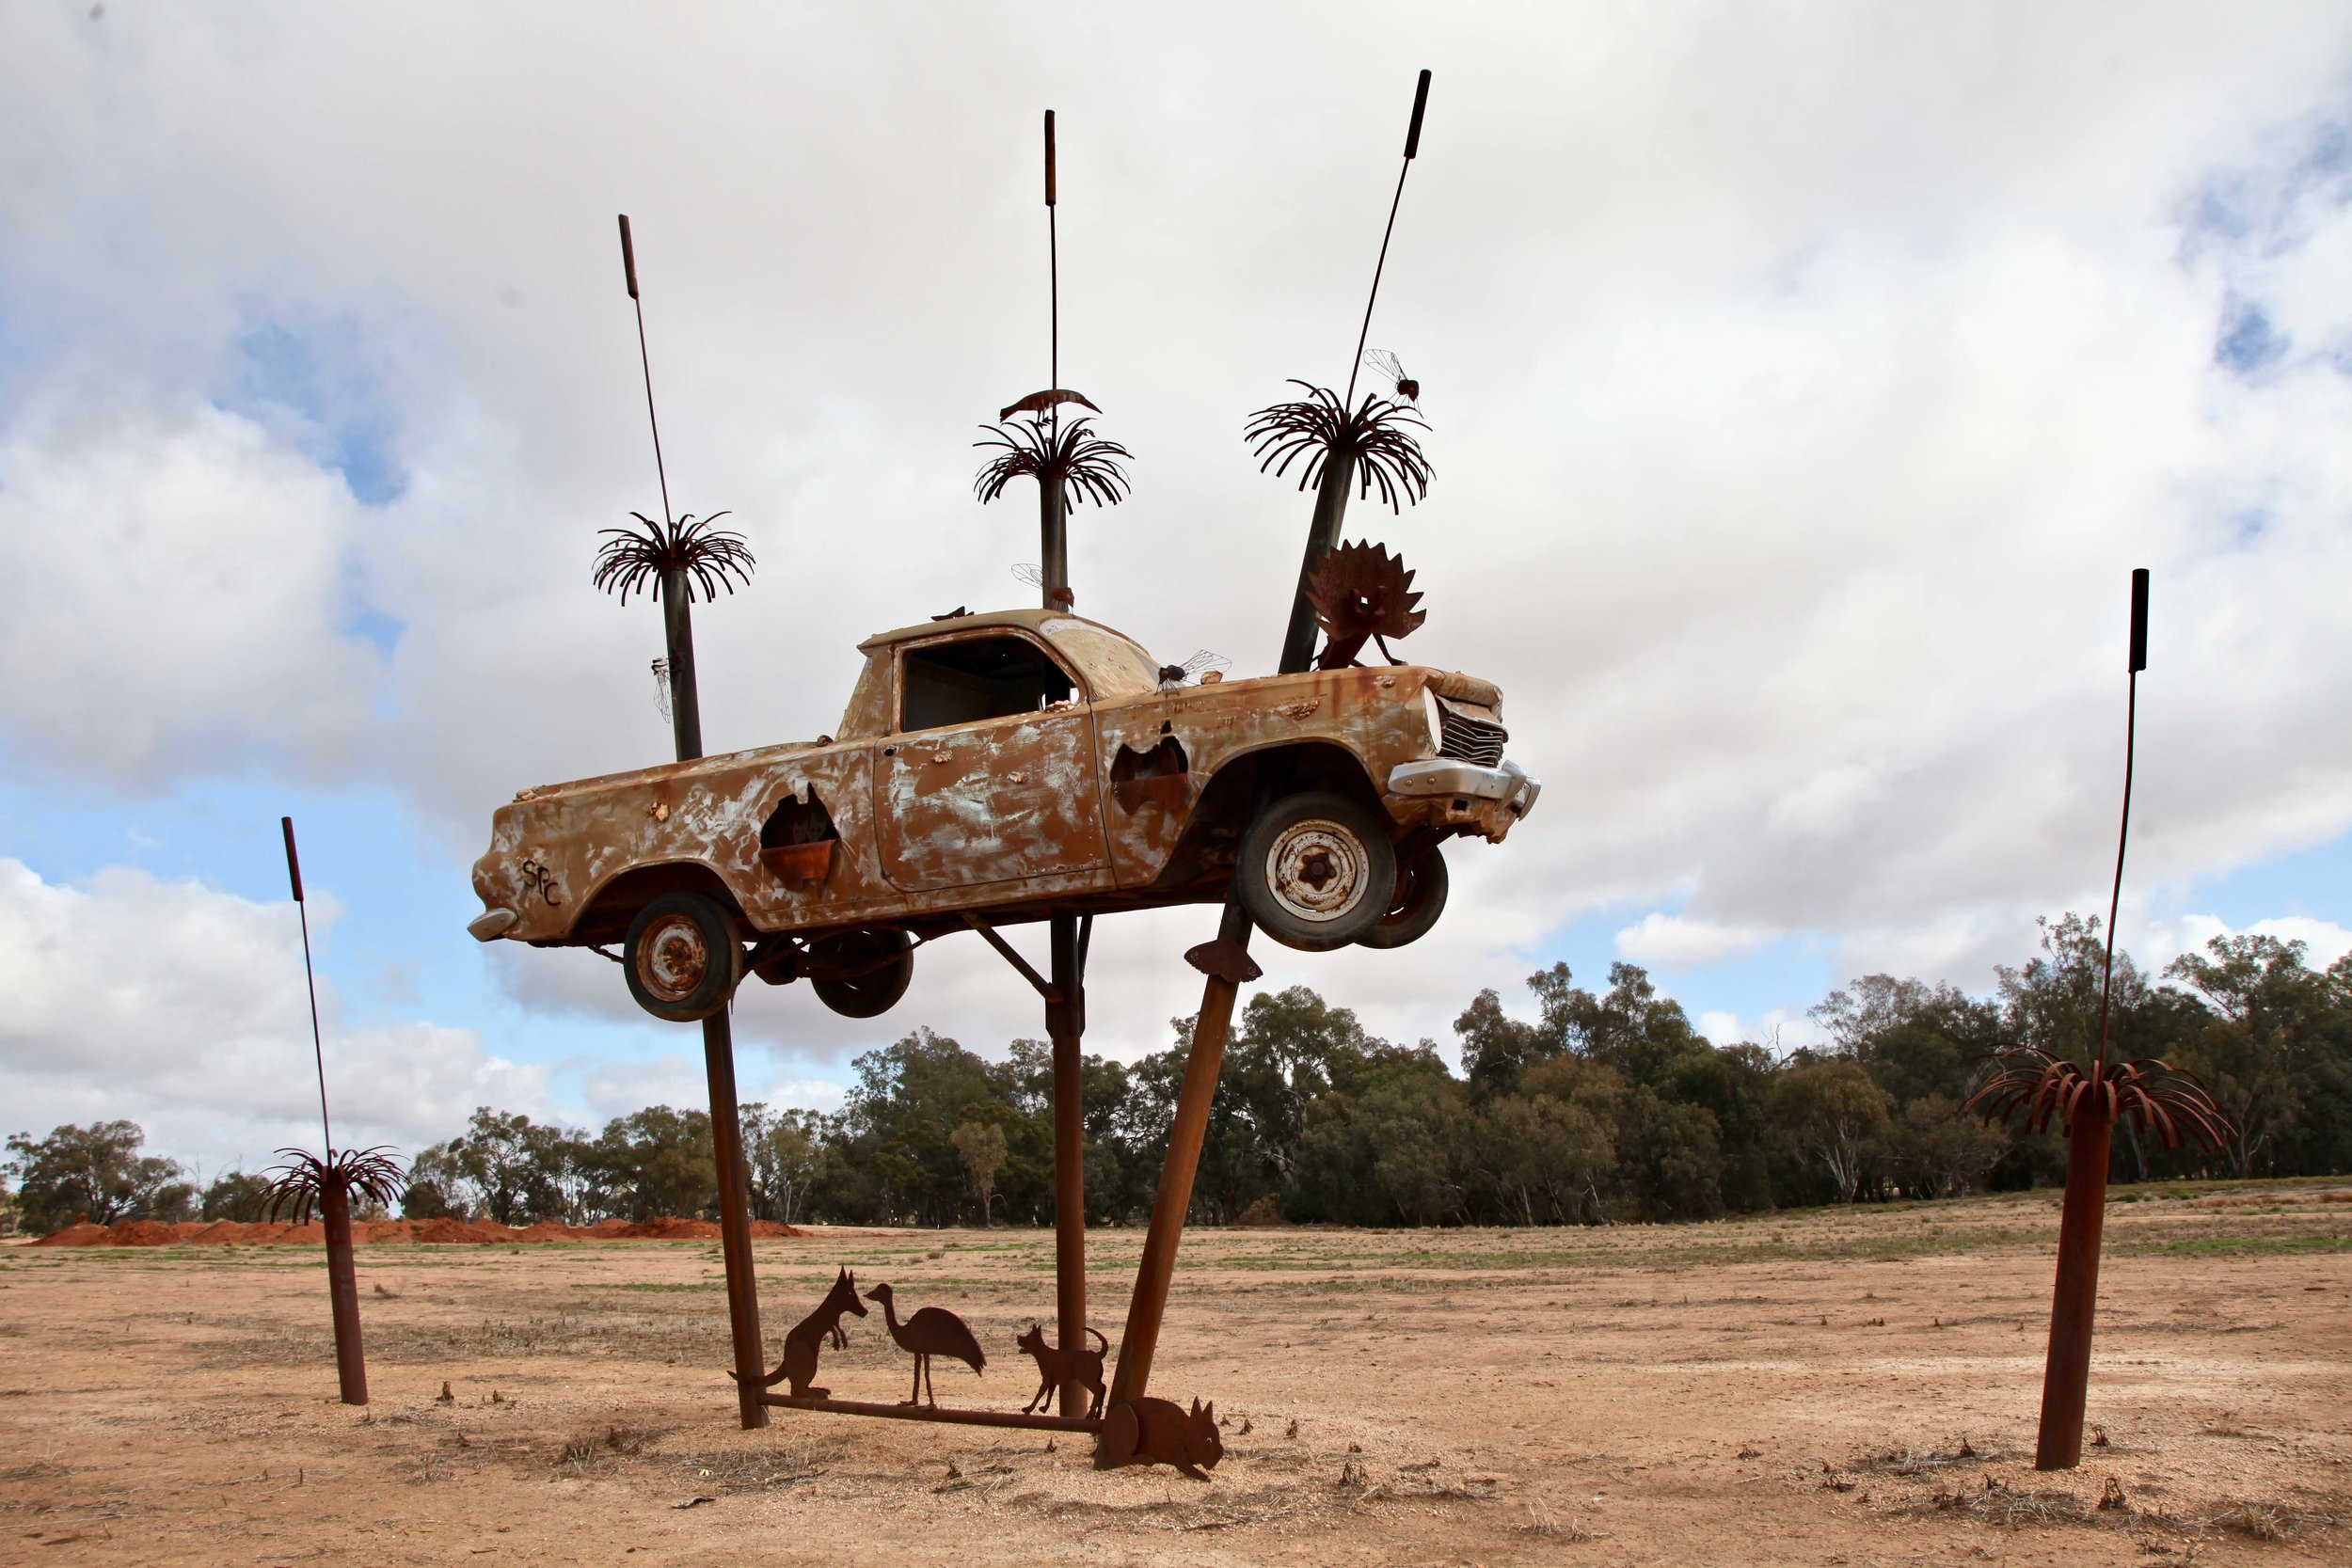 Ute-opia by Stephen Coburn